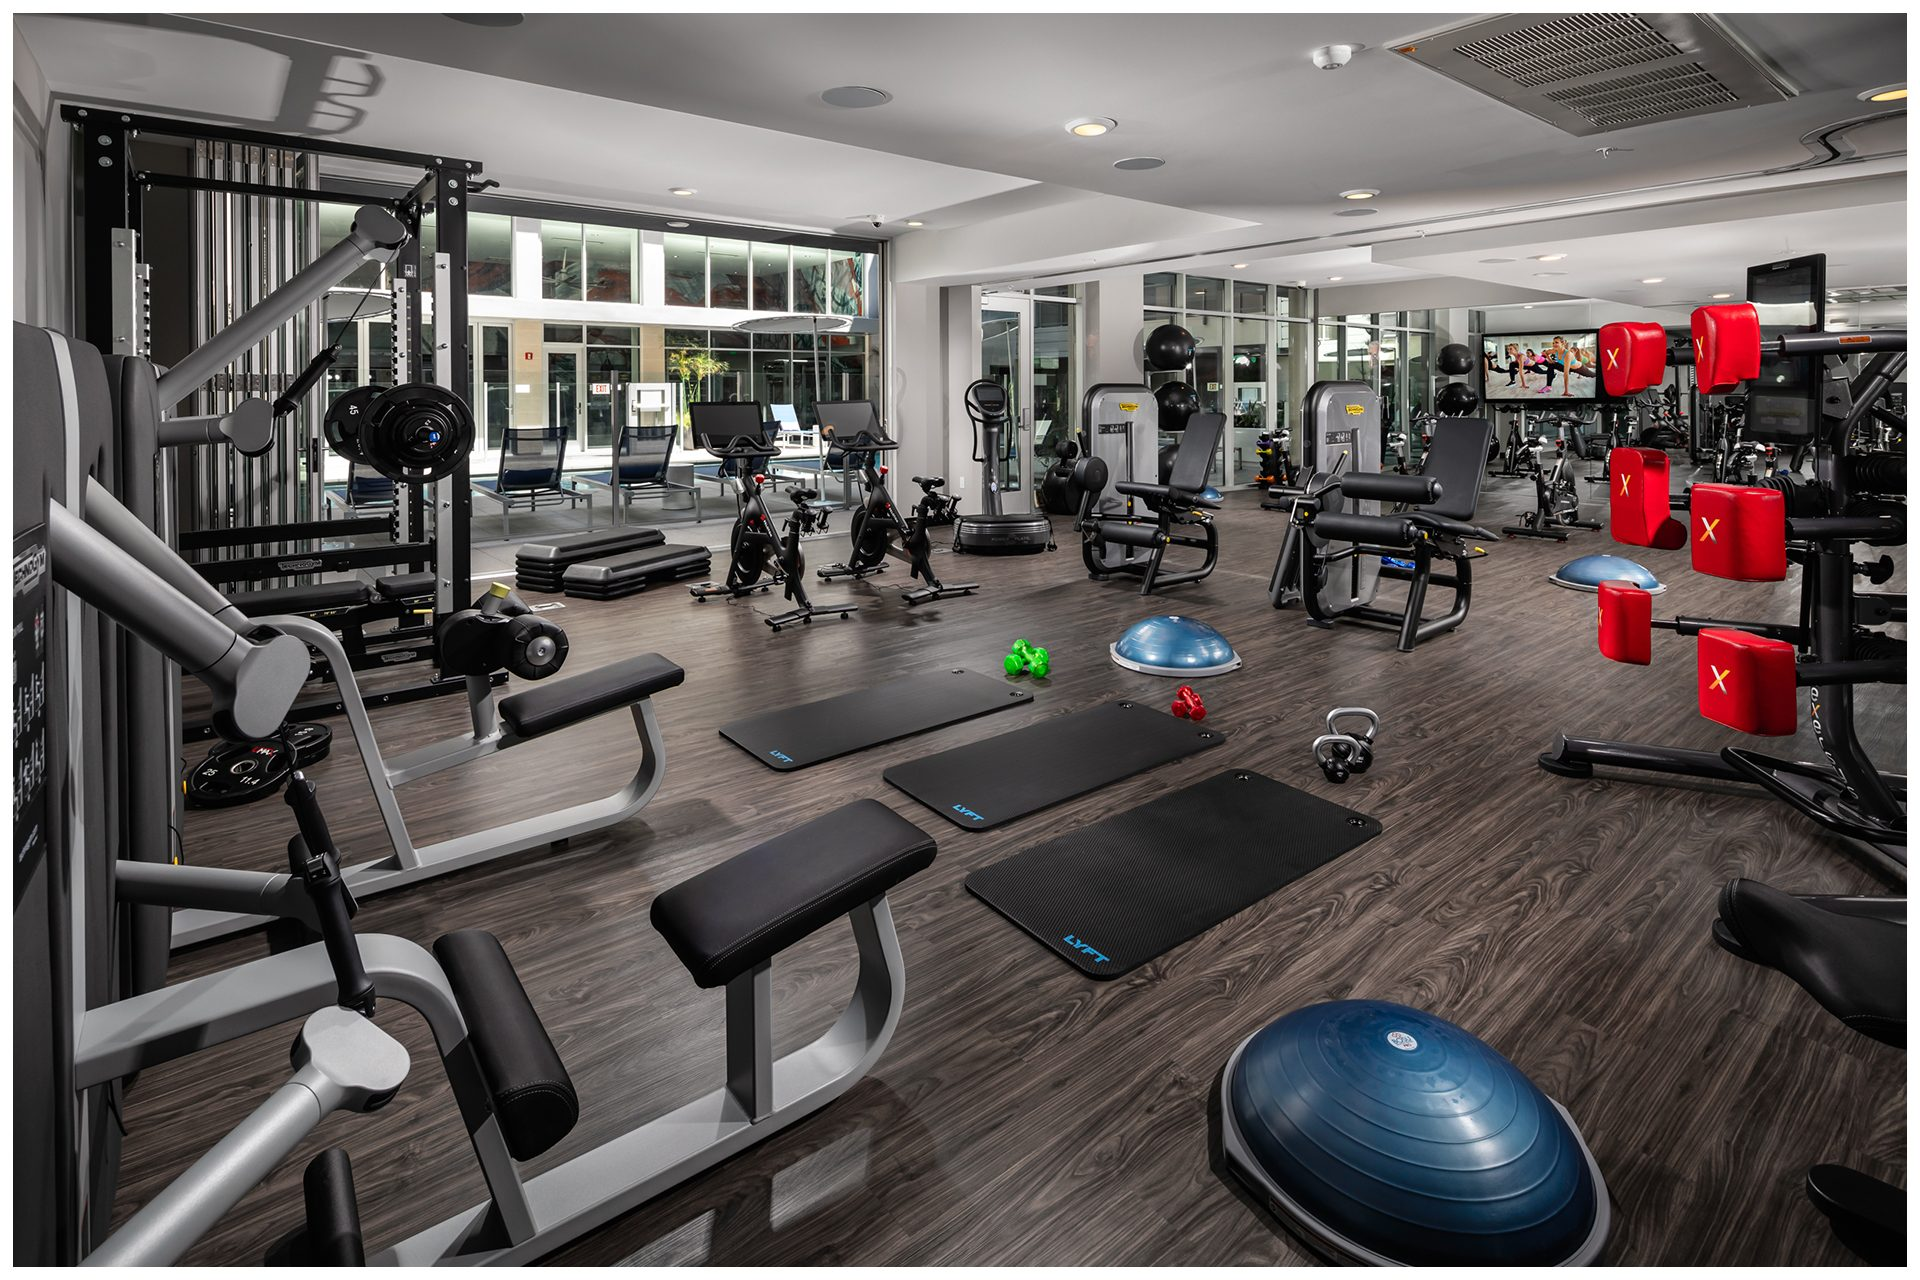 GYM AV PROVISIONSGym Audio & TV & WiFi. Audio Video provisions are controlled via an in-room wall-mounted iPad and remotely from leasing office iPad.